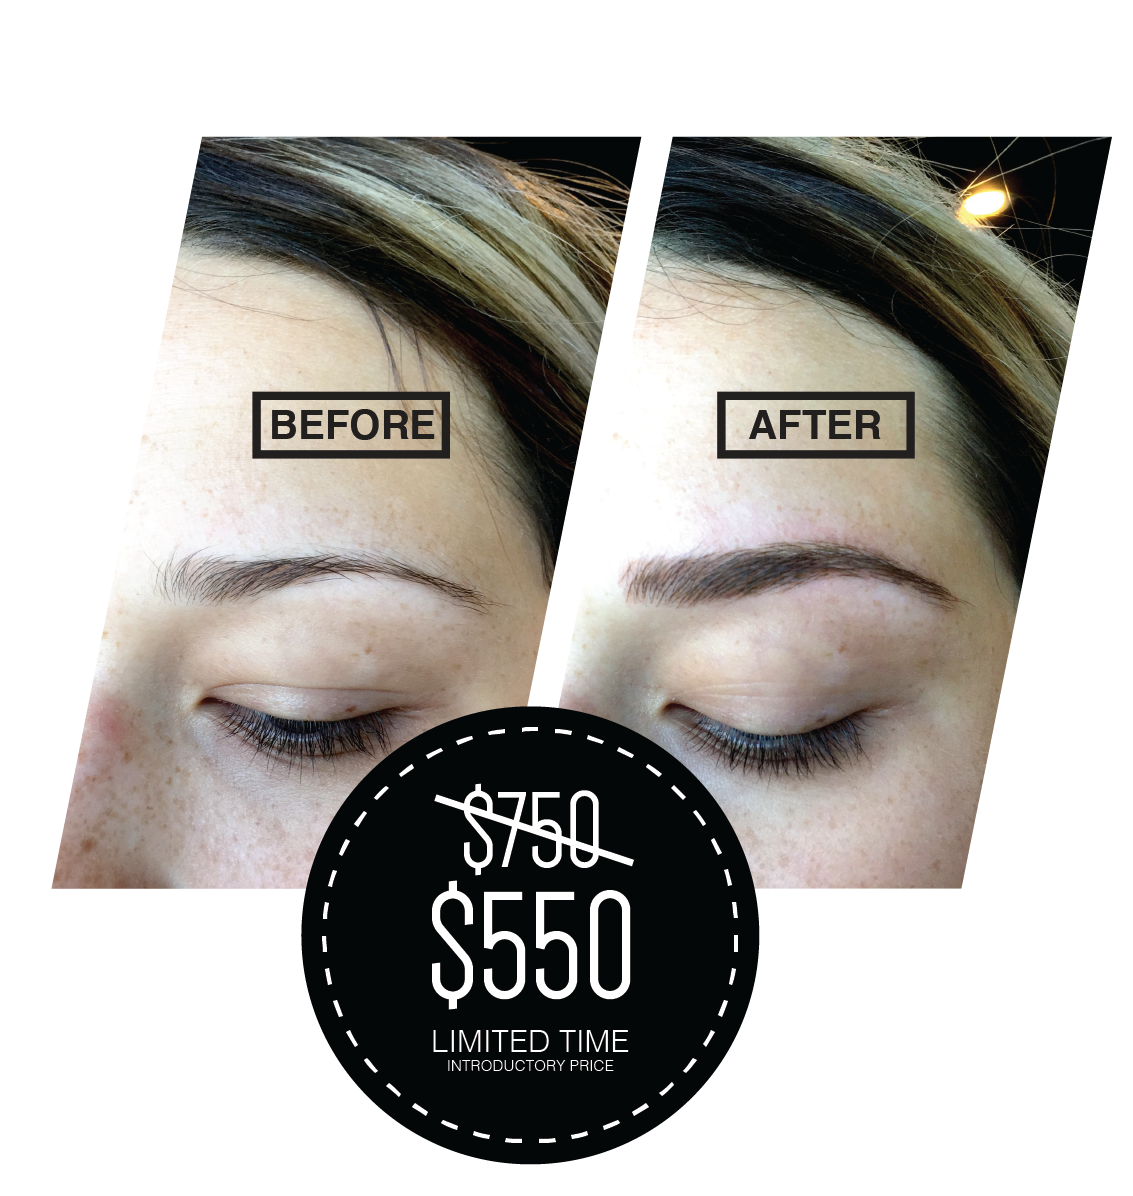 Drawing hairlines microblade. Microblading services in houston